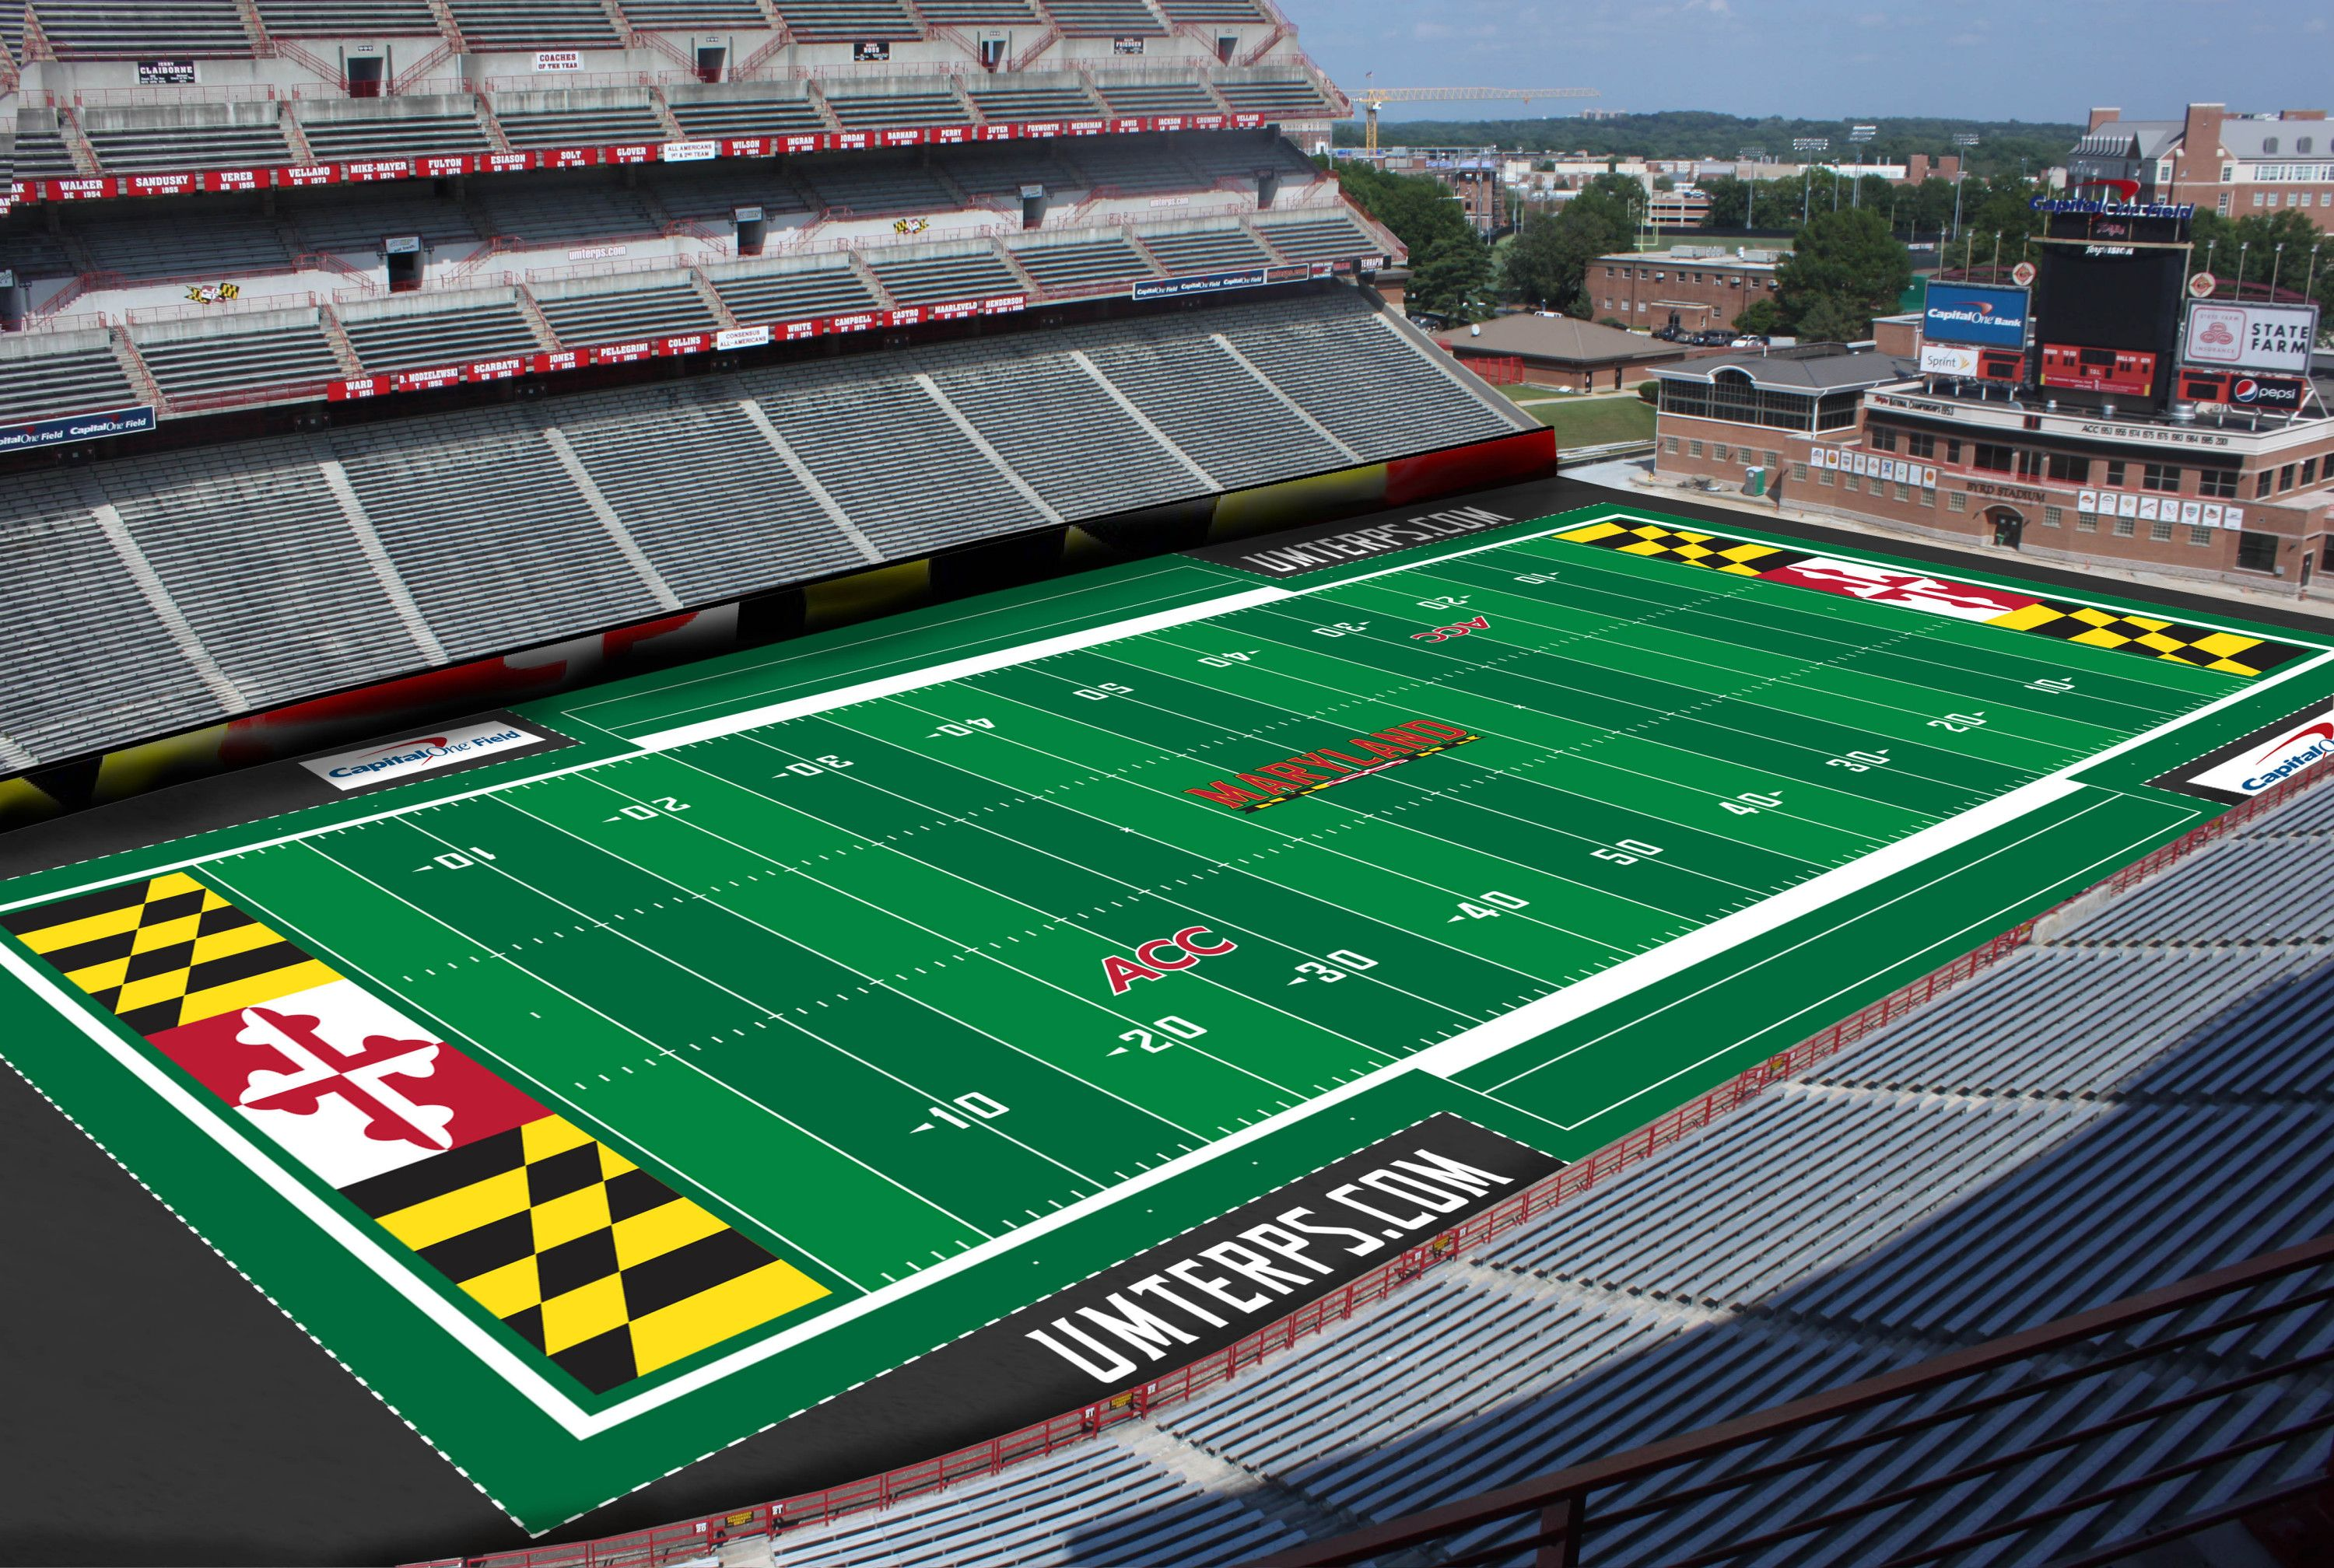 Maryland Football Stadium Google Search Football Stadiums Ohio State Football Stadium